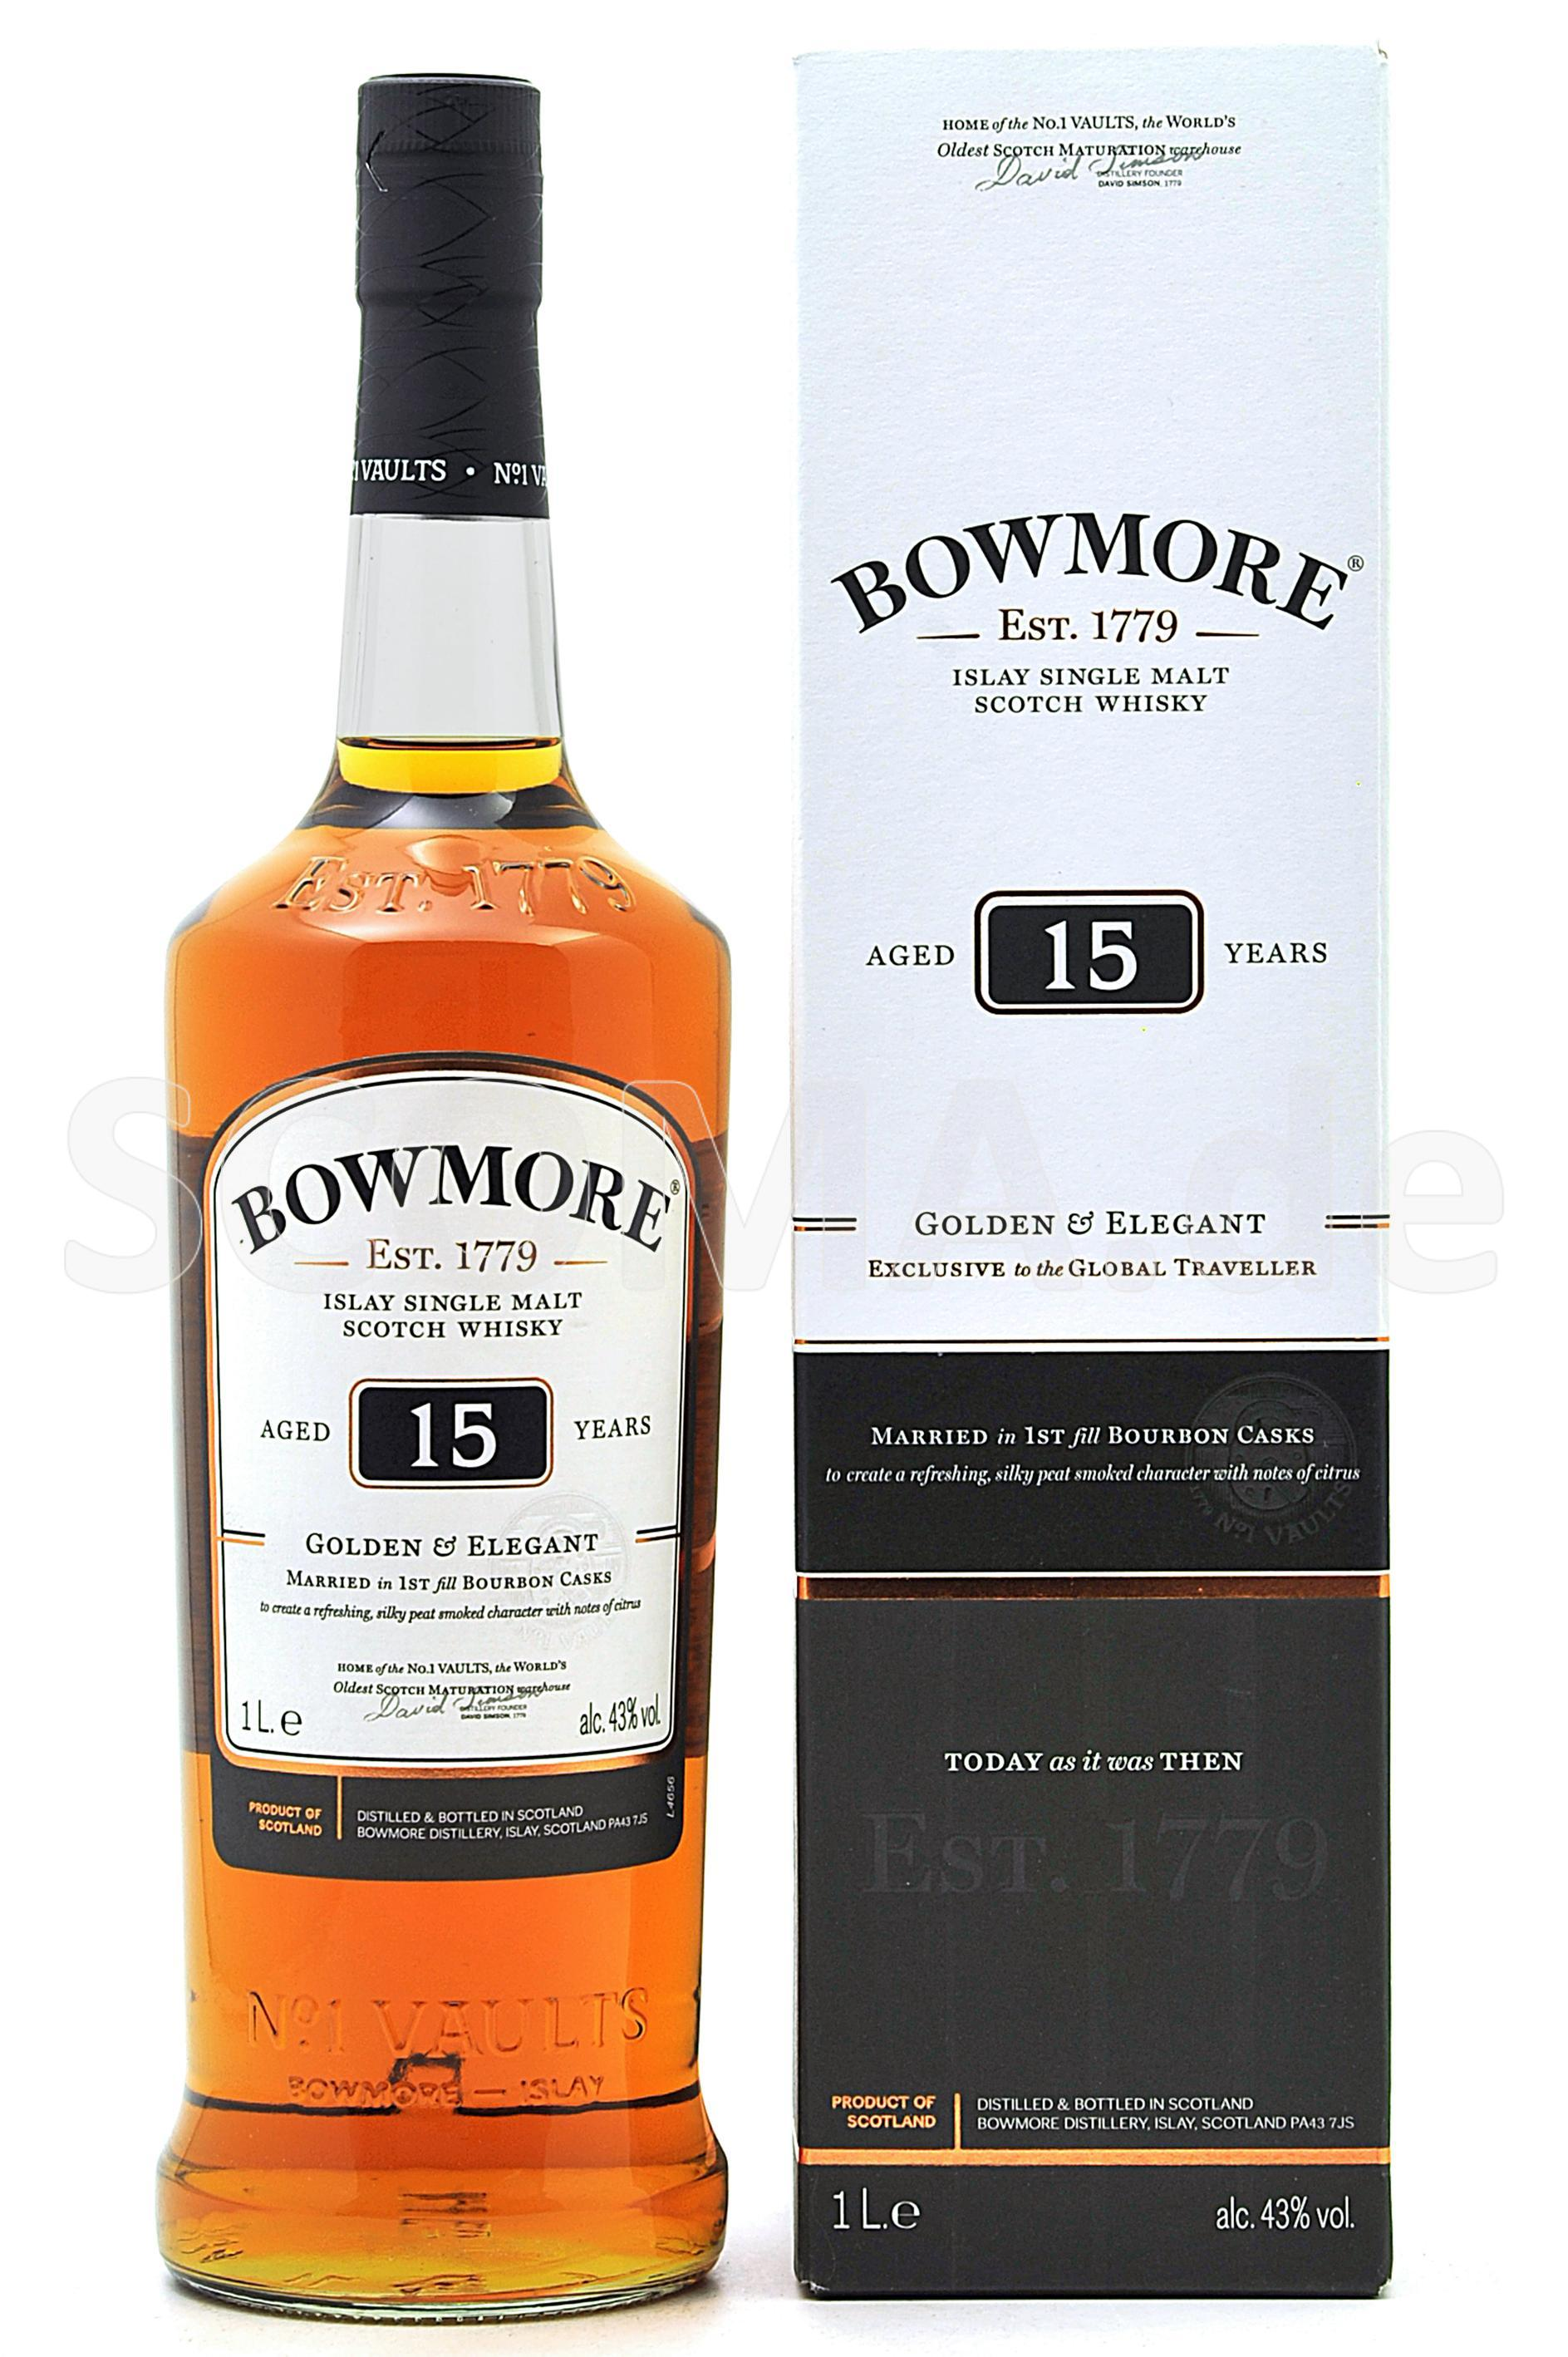 Bowmore 15 years Golden & Inte...